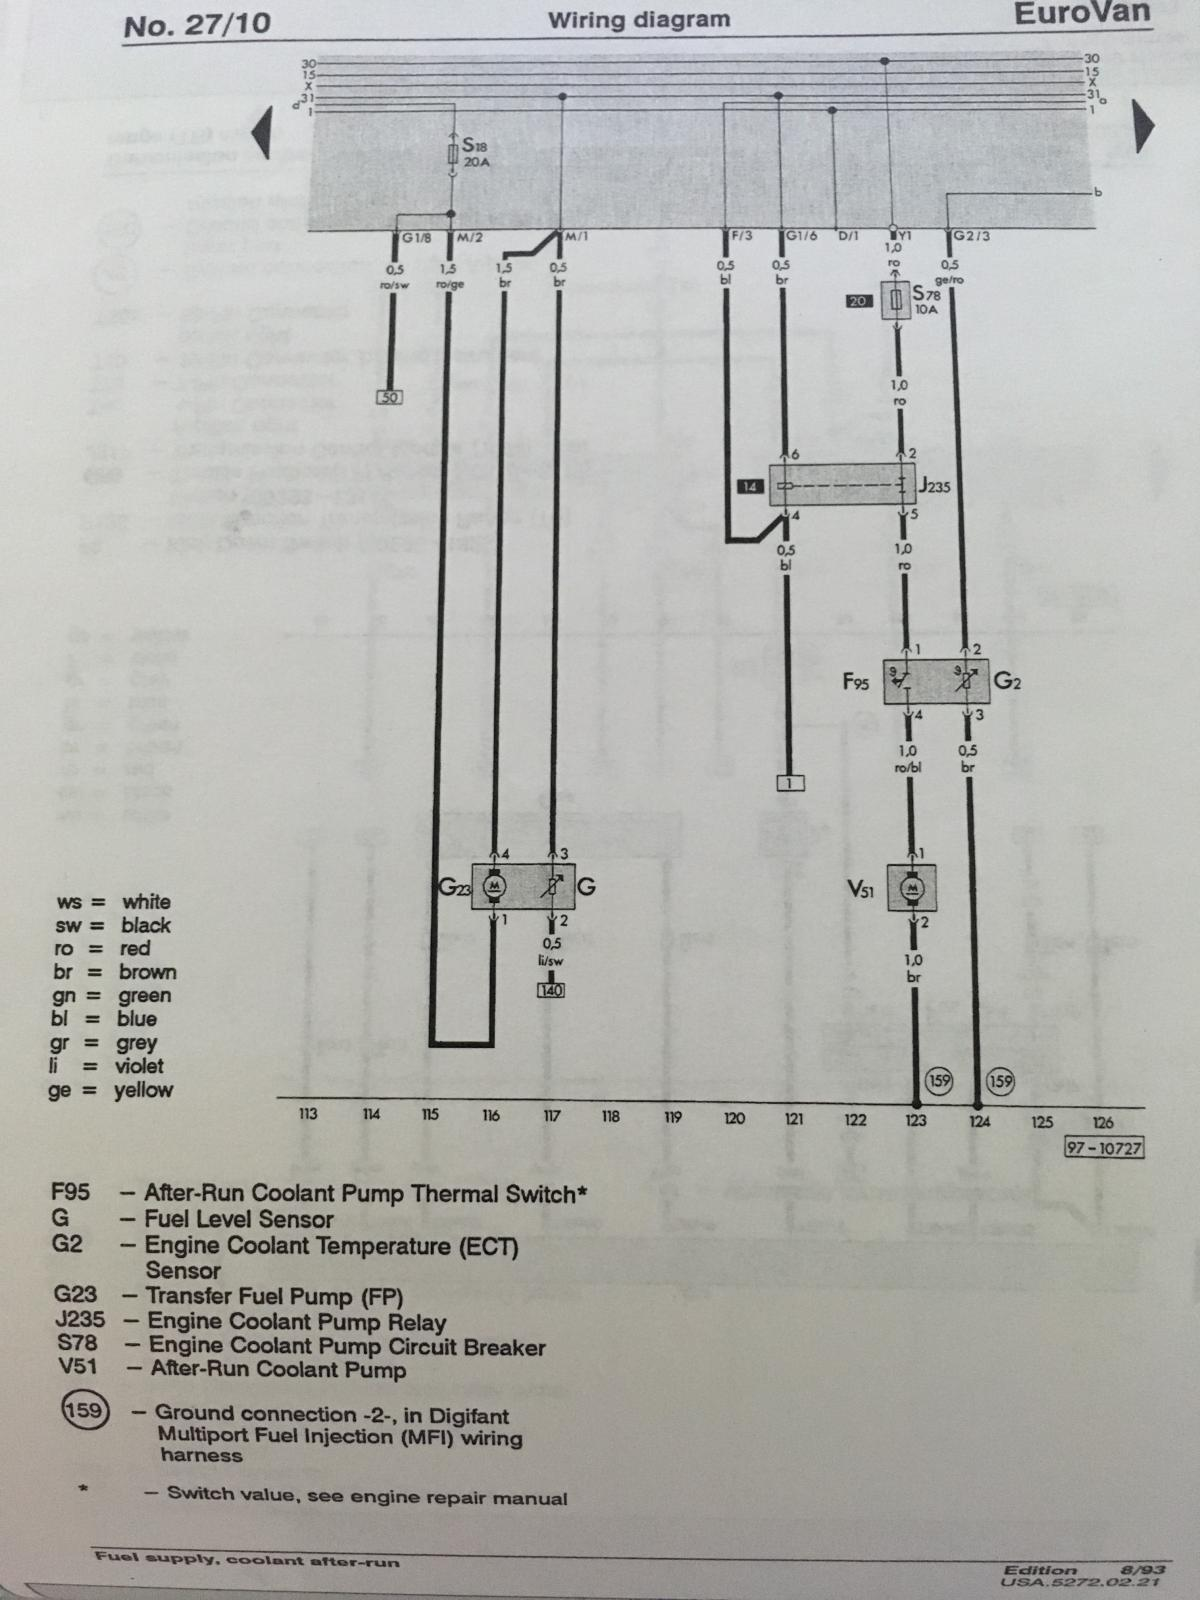 1993 Eurovan Wiring Diagram List Of Schematic Circuit Fig 2 Engine Coolant Temperature Ect Sensor U2022 Rh Olivetreedesigns Co